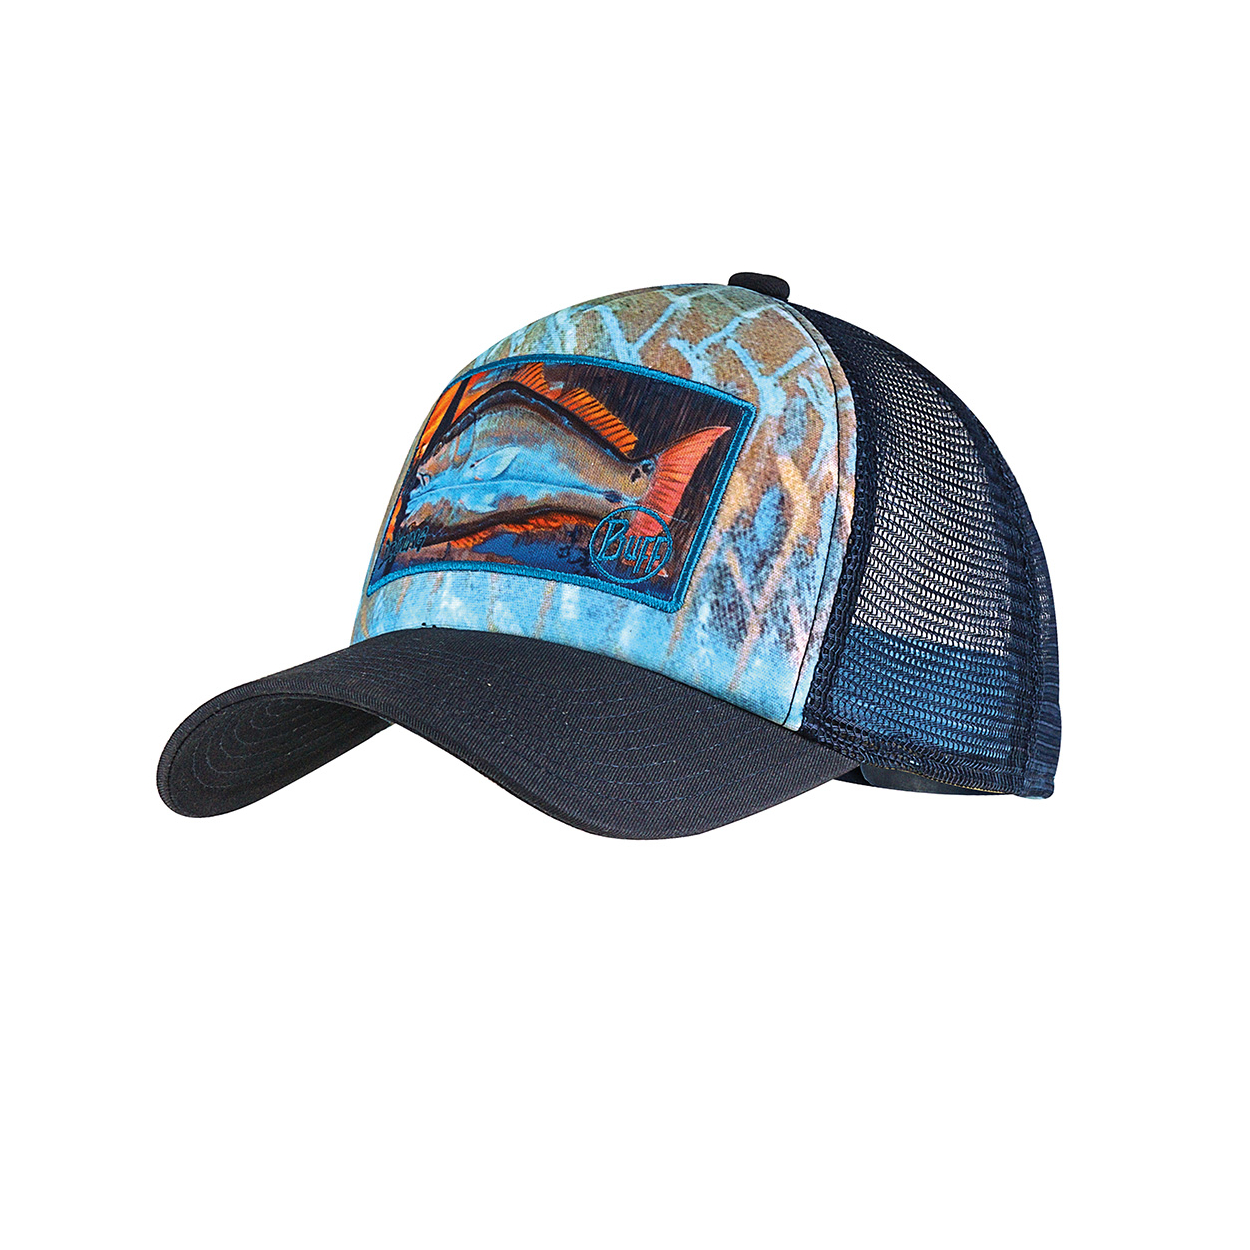 2457784dcaa16f Buff Shield The Summer Heat With Sun Hats From Austin Kayak - ACK